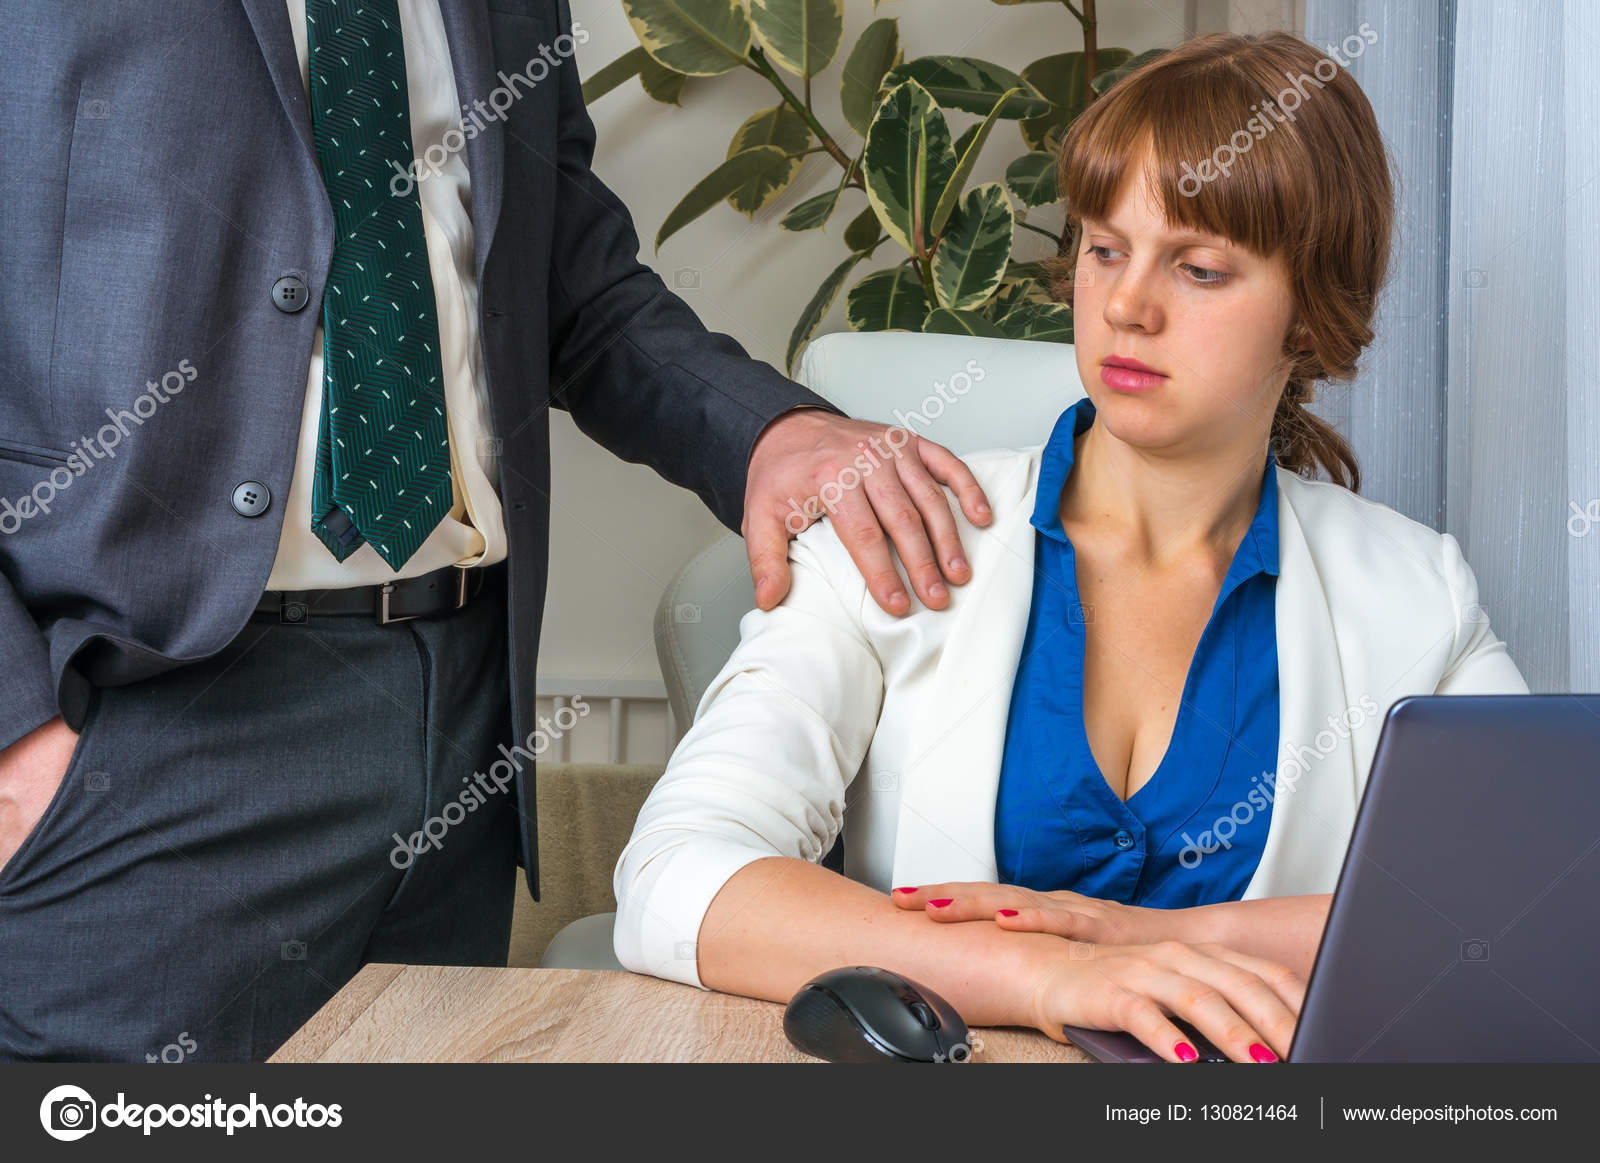 Man touching womans shoulder - sexual harassment in